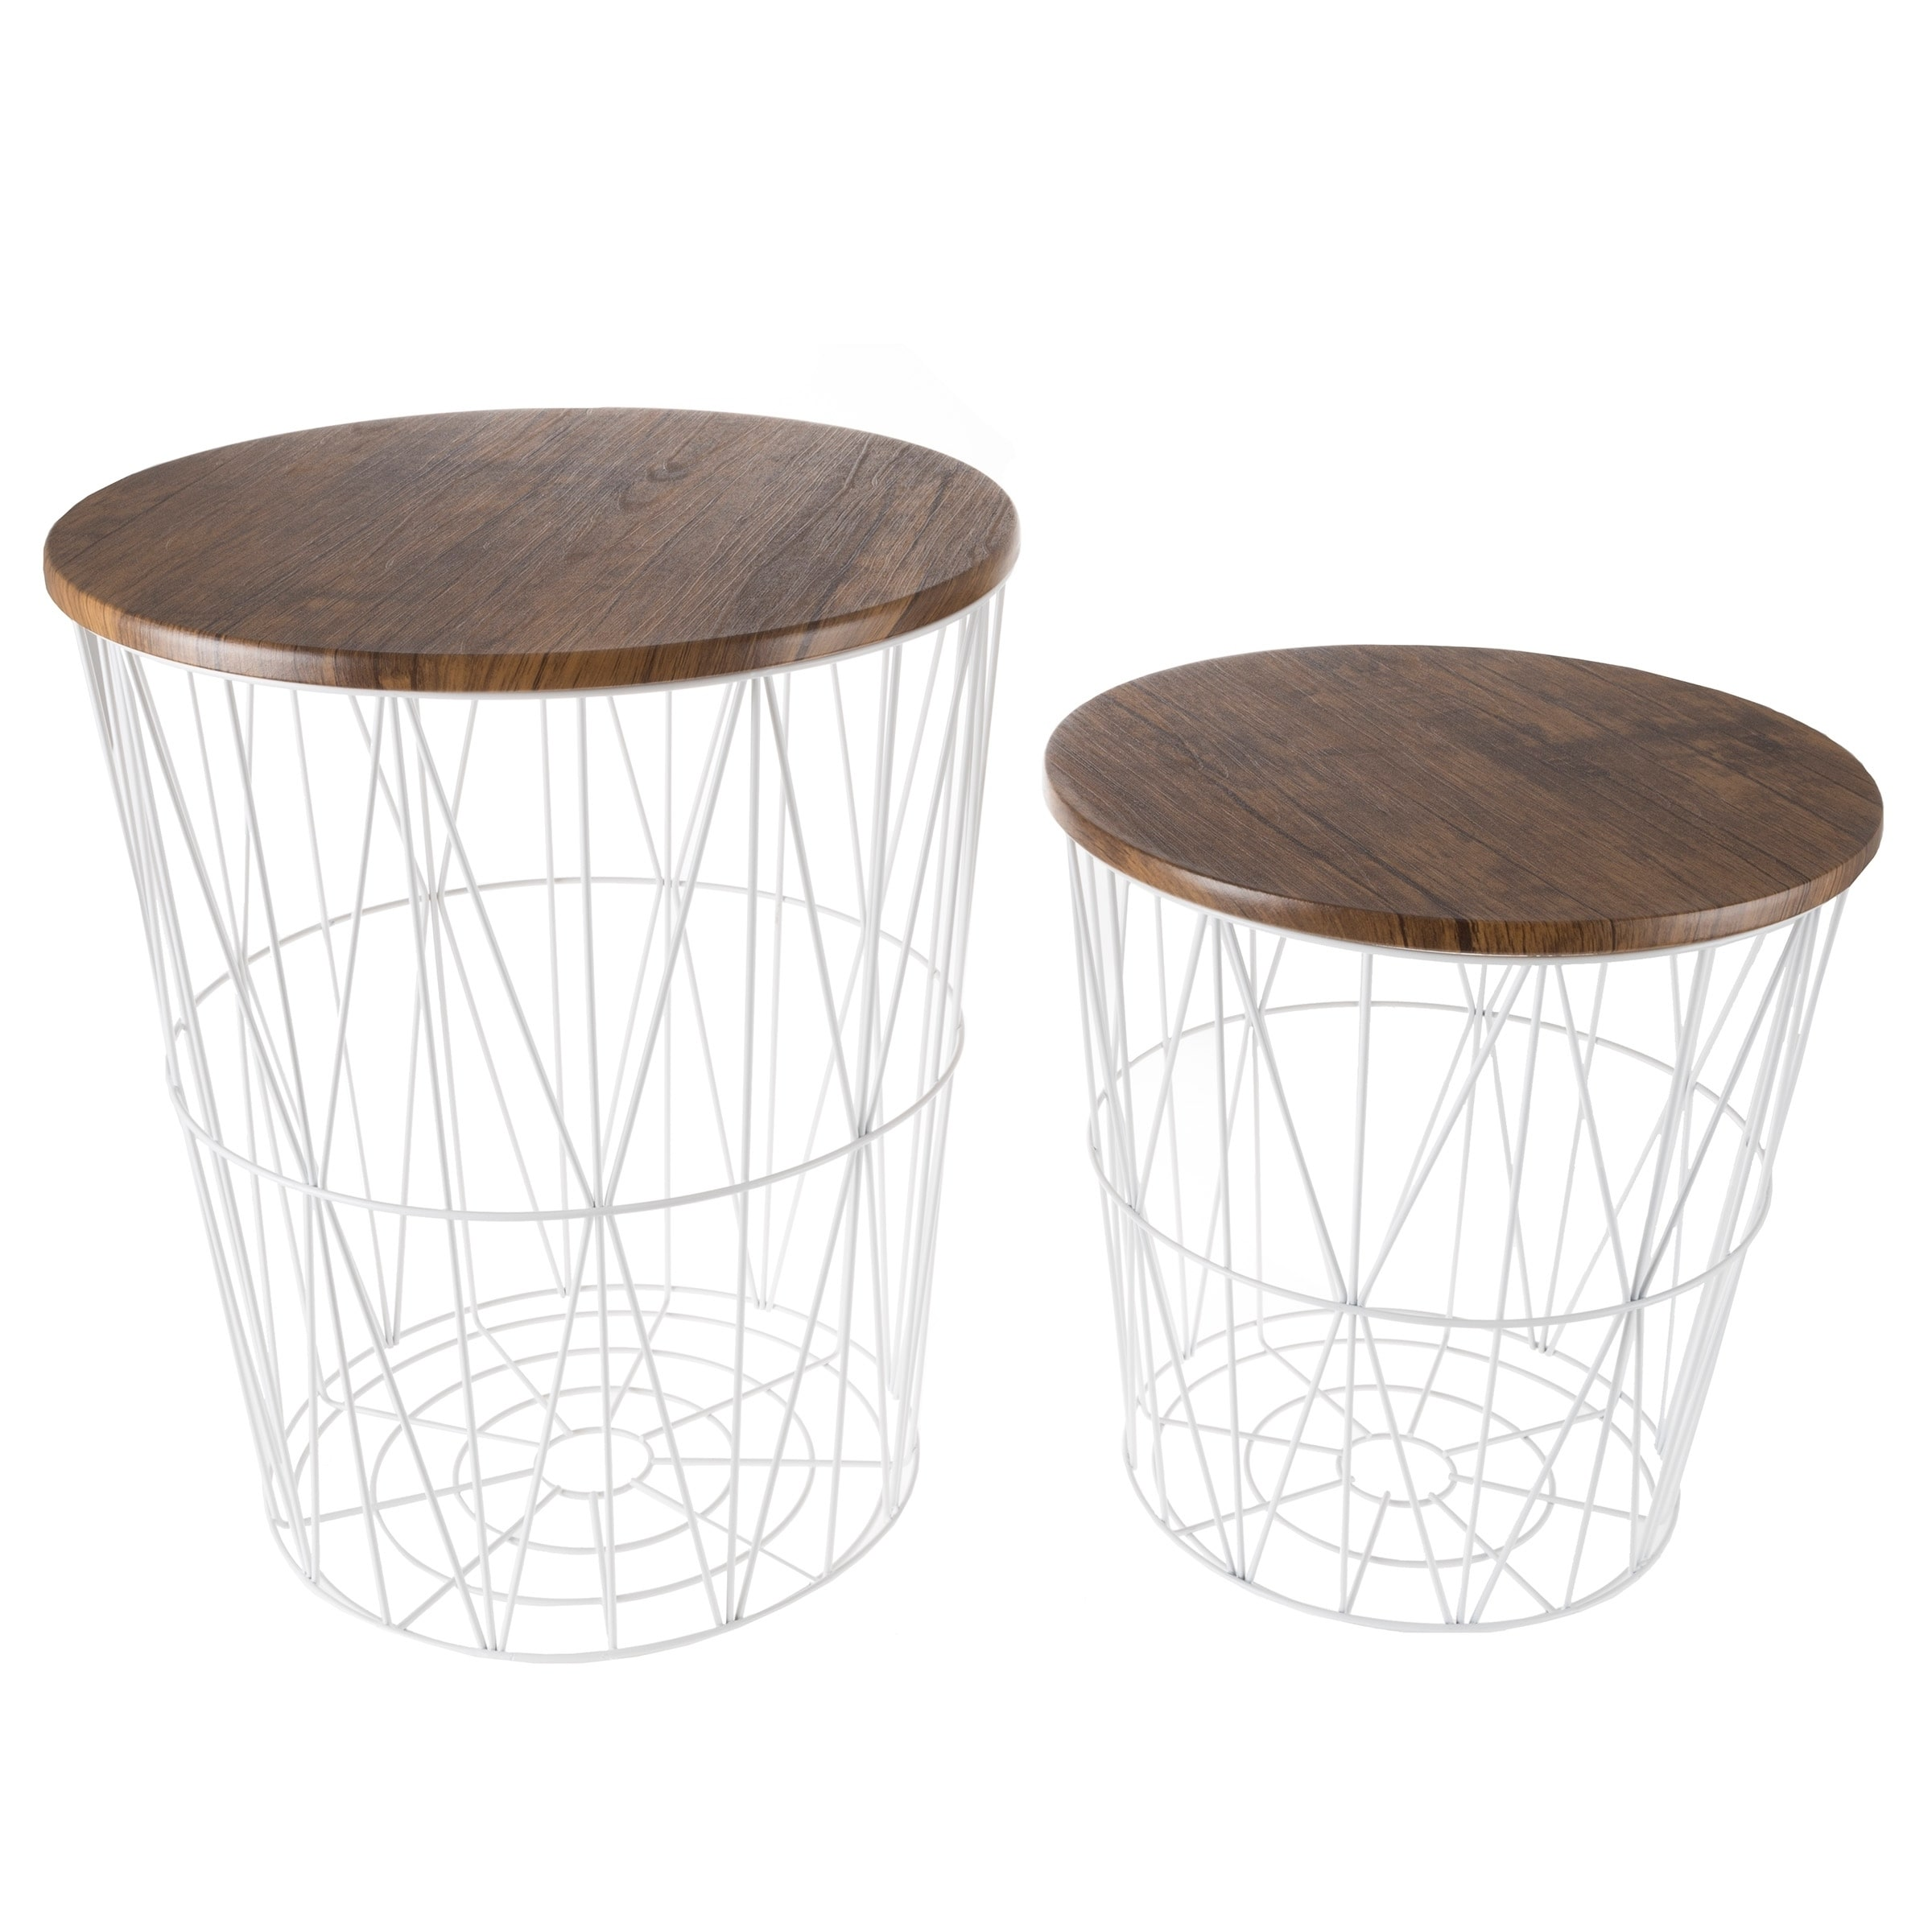 - Shop Nesting End Tables With Storage- Set Of 2 Convertible Round